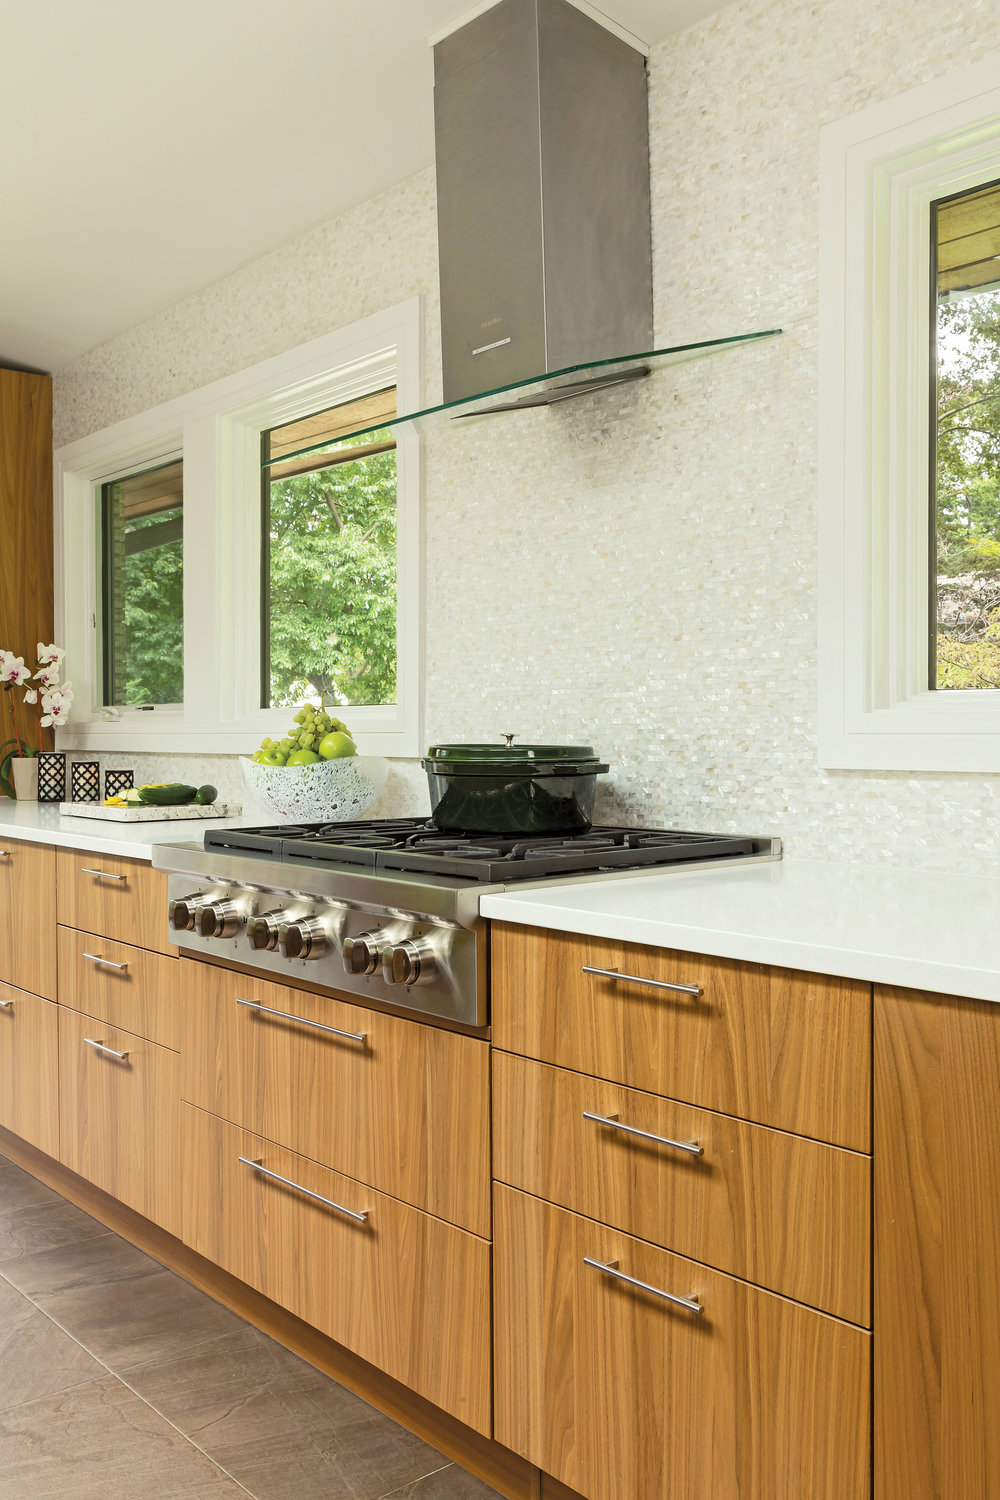 Wolf range and hood became the axis of the room in this one-of-a-kind kitchen with custom, book-matched vertical grain walnut cabinets imported from Italy.  Mother of pearl backsplash creates spa like feel.